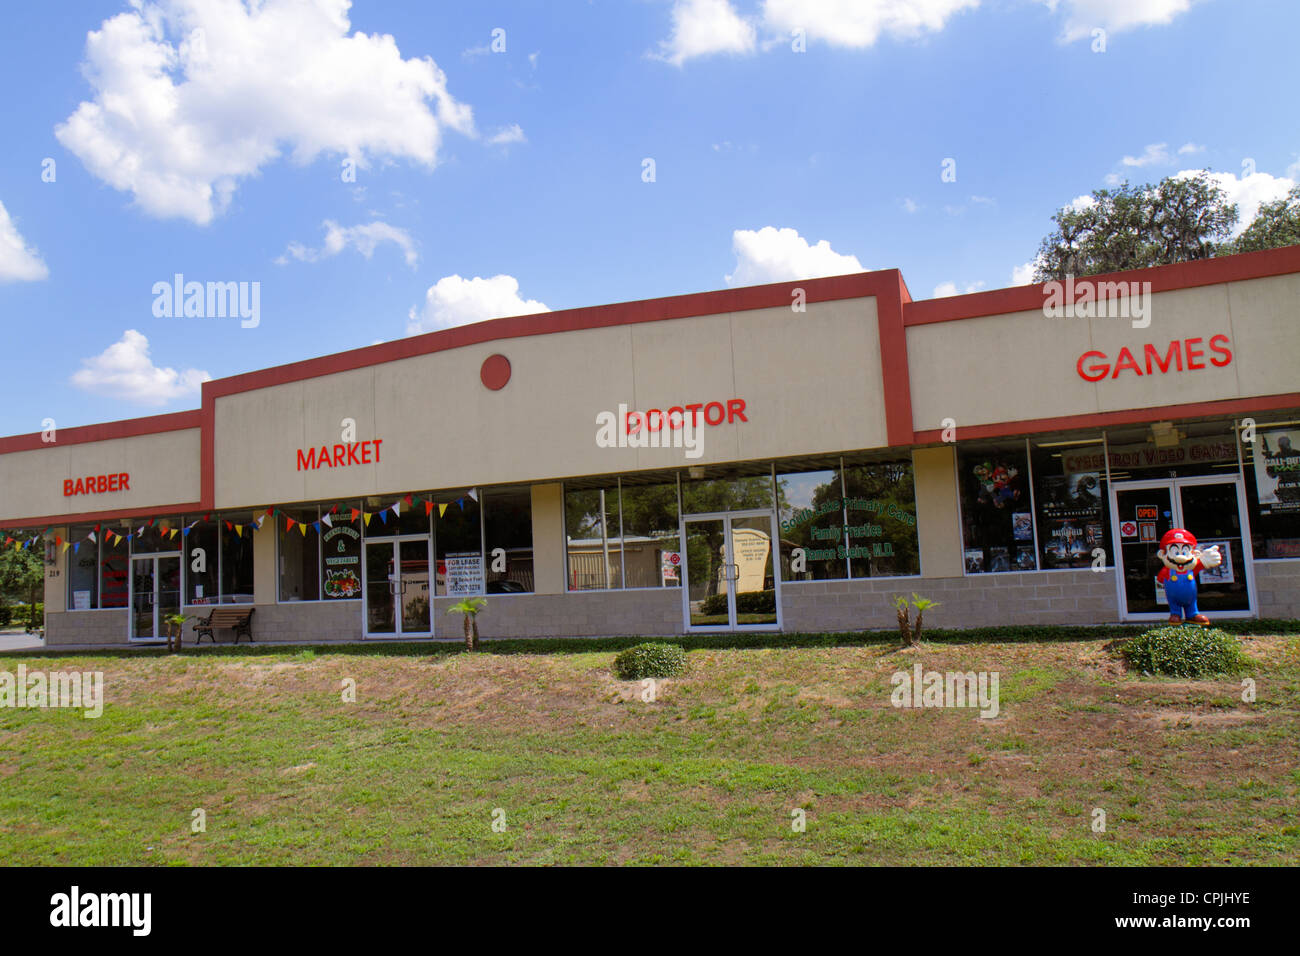 Clermont Florida barber market doctor games building businesses small town strip mall commercial building - Stock Image